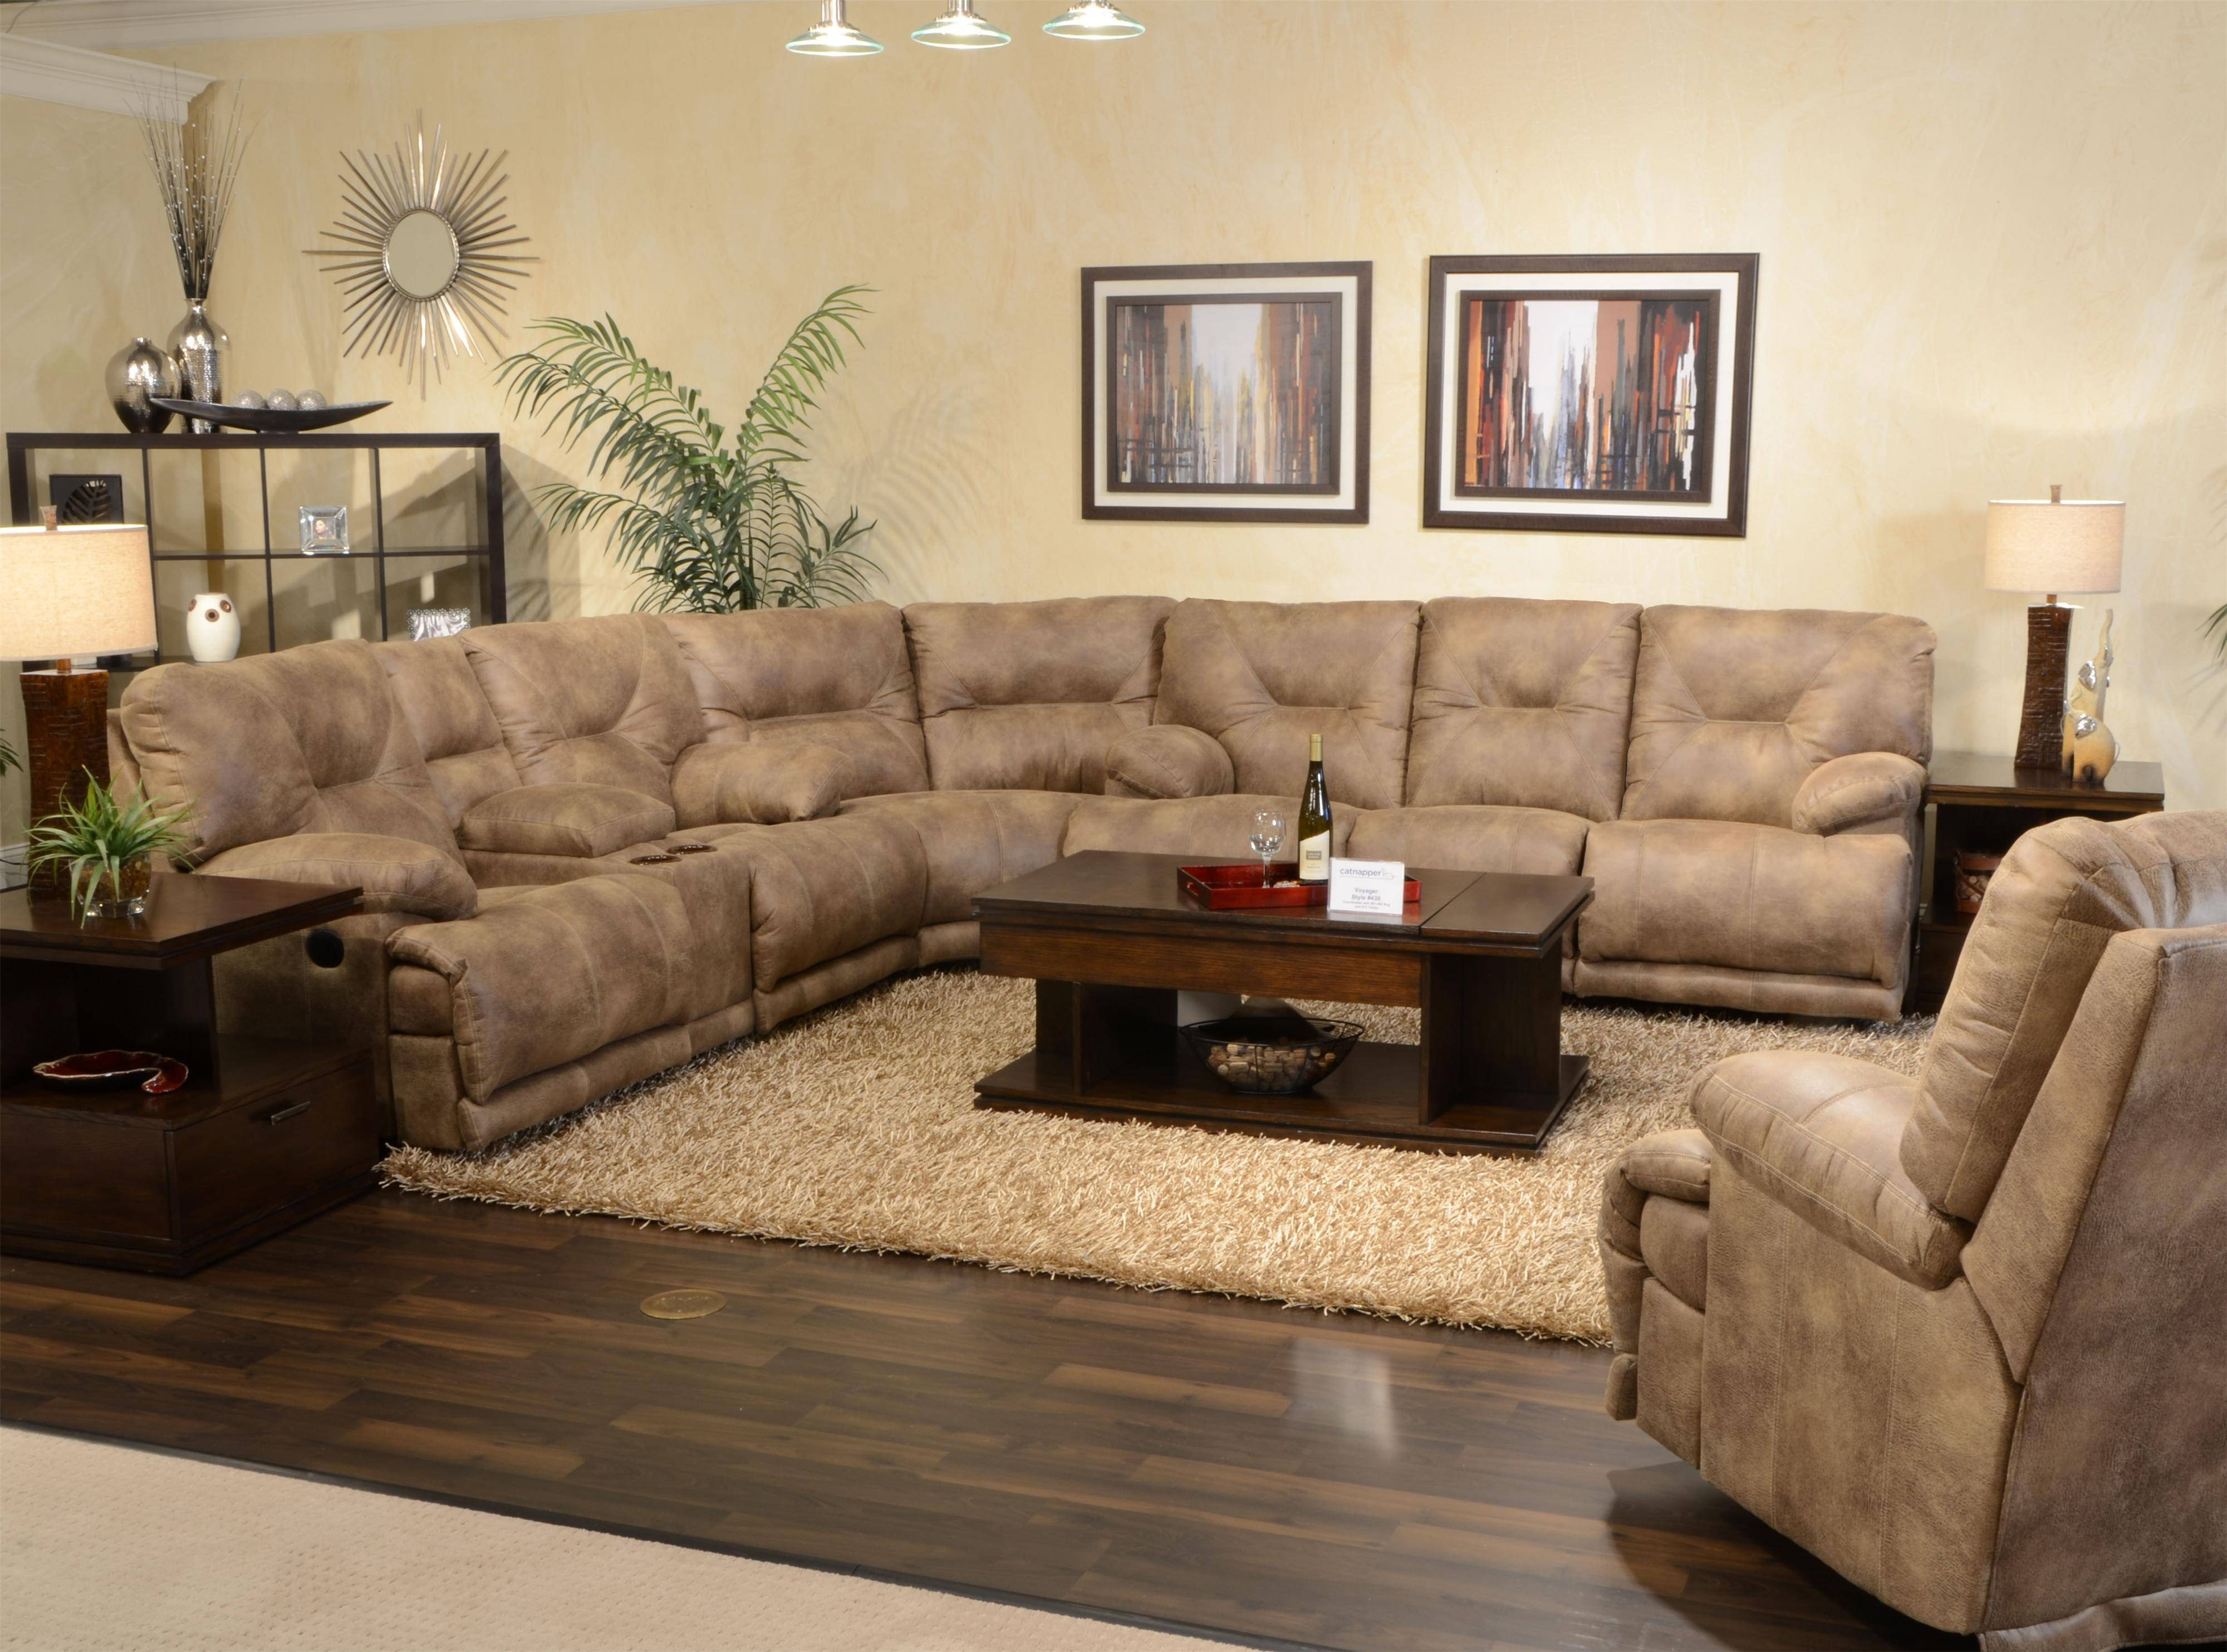 Appealing Cheap Reclining Sectional Sofas 82 About Remodel Home intended for Theatre Sectional Sofas (Image : theatre sectionals - Sectionals, Sofas & Couches